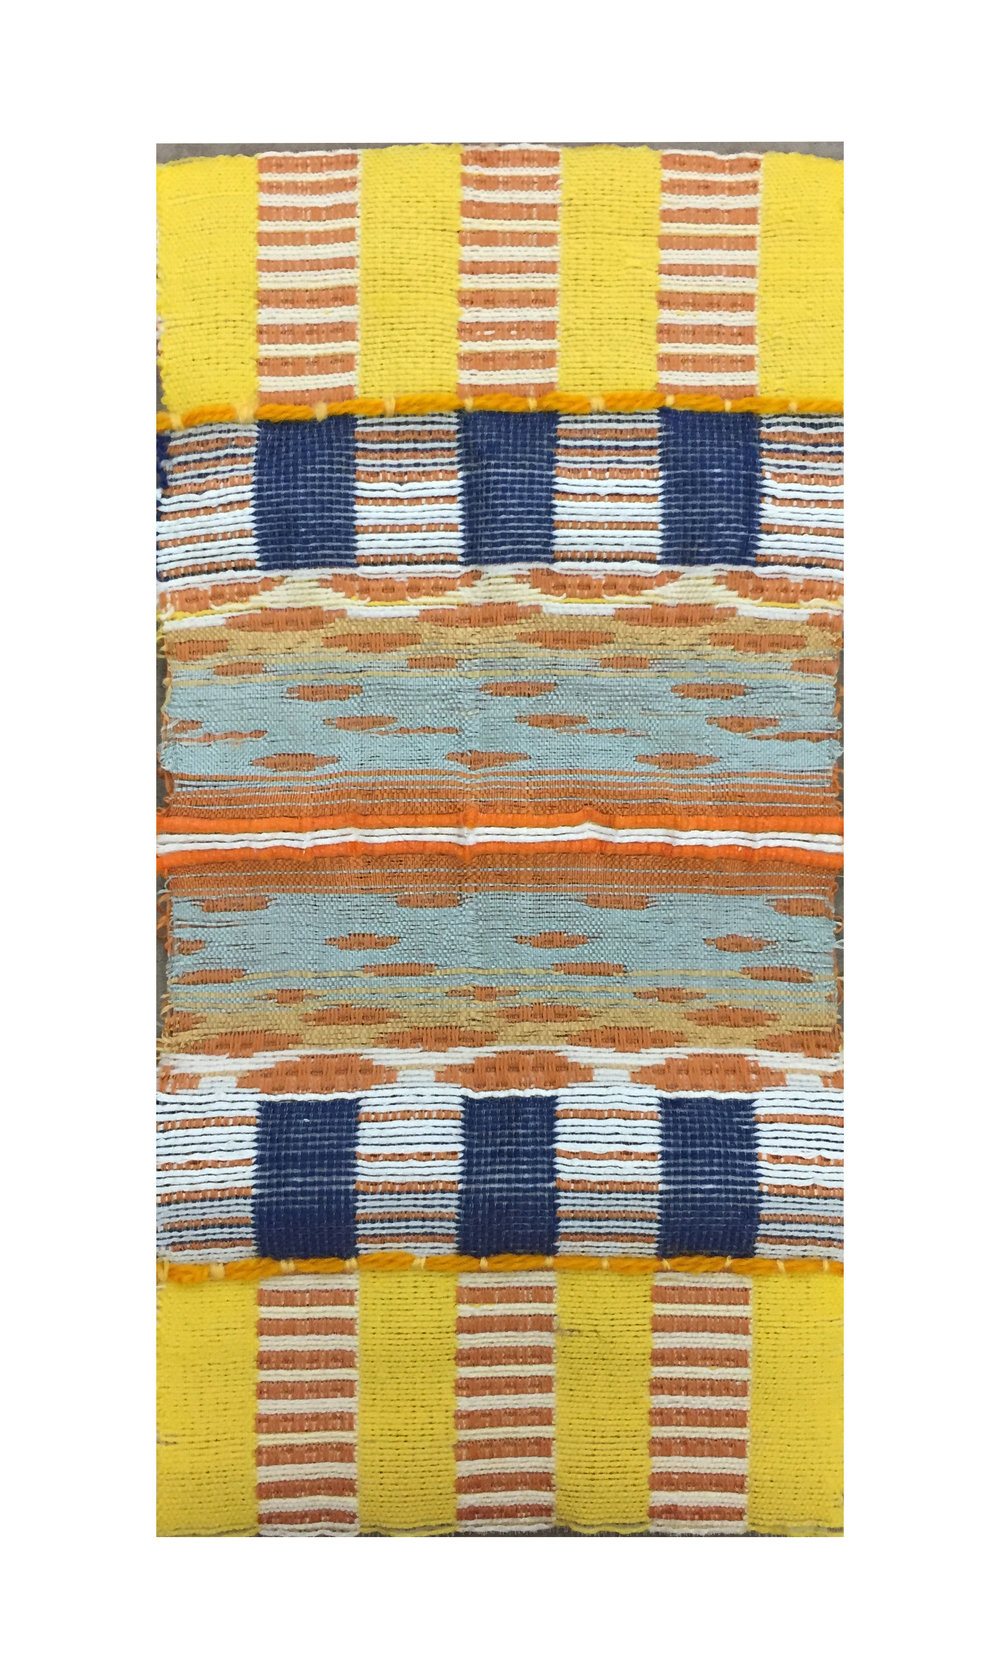 this collection of woven samples is inspired from the differences and similarities between Theravada Buddhism and Zen Buddhism  each sample was designed on Weavepoint7 and hand-woven on a 24 Harness AVL Dobby loom